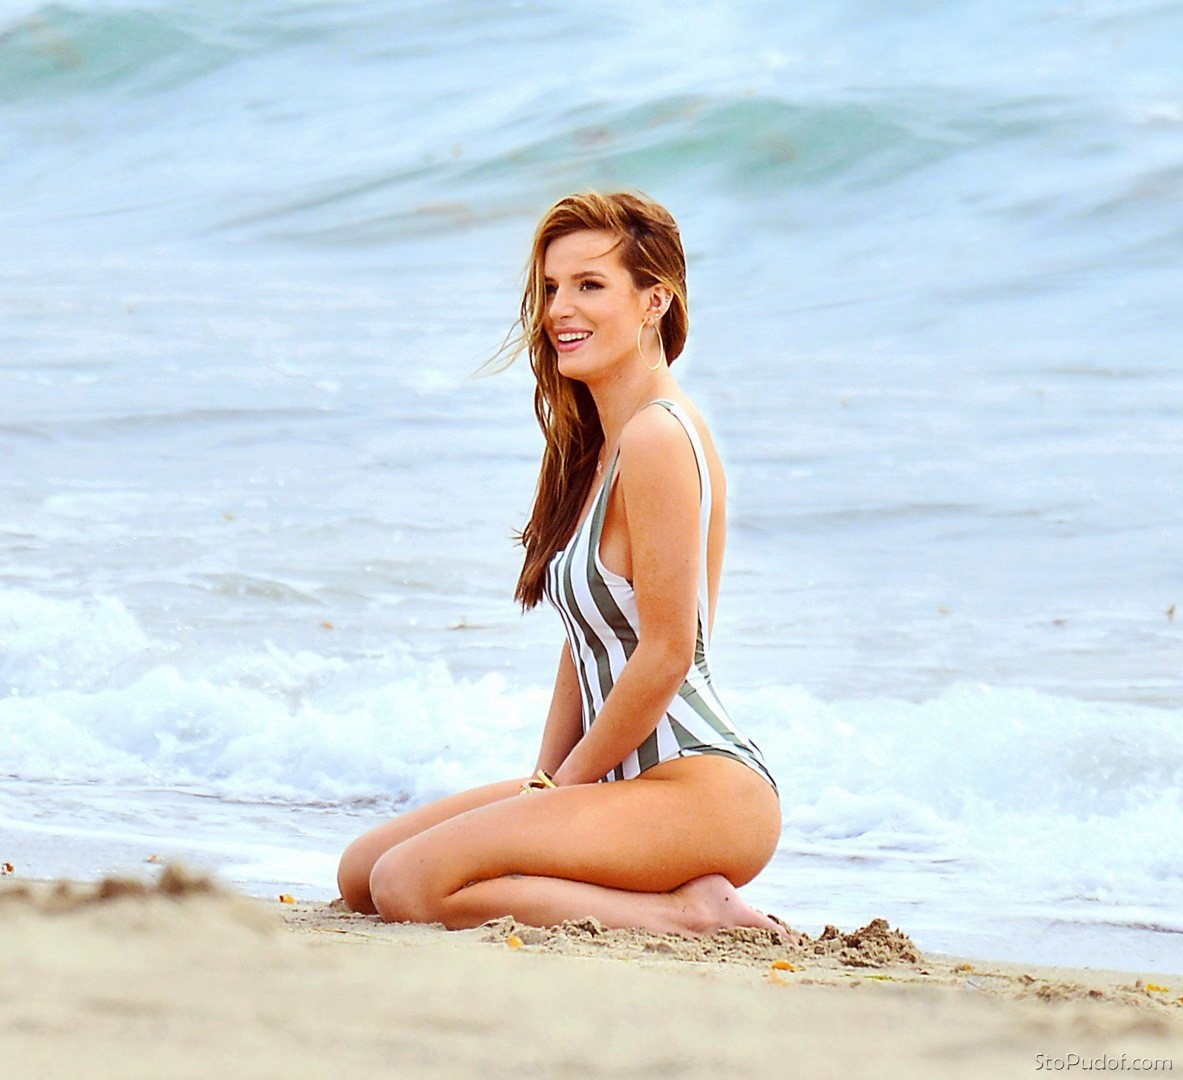 pictures of Bella Thorne nudes - UkPhotoSafari